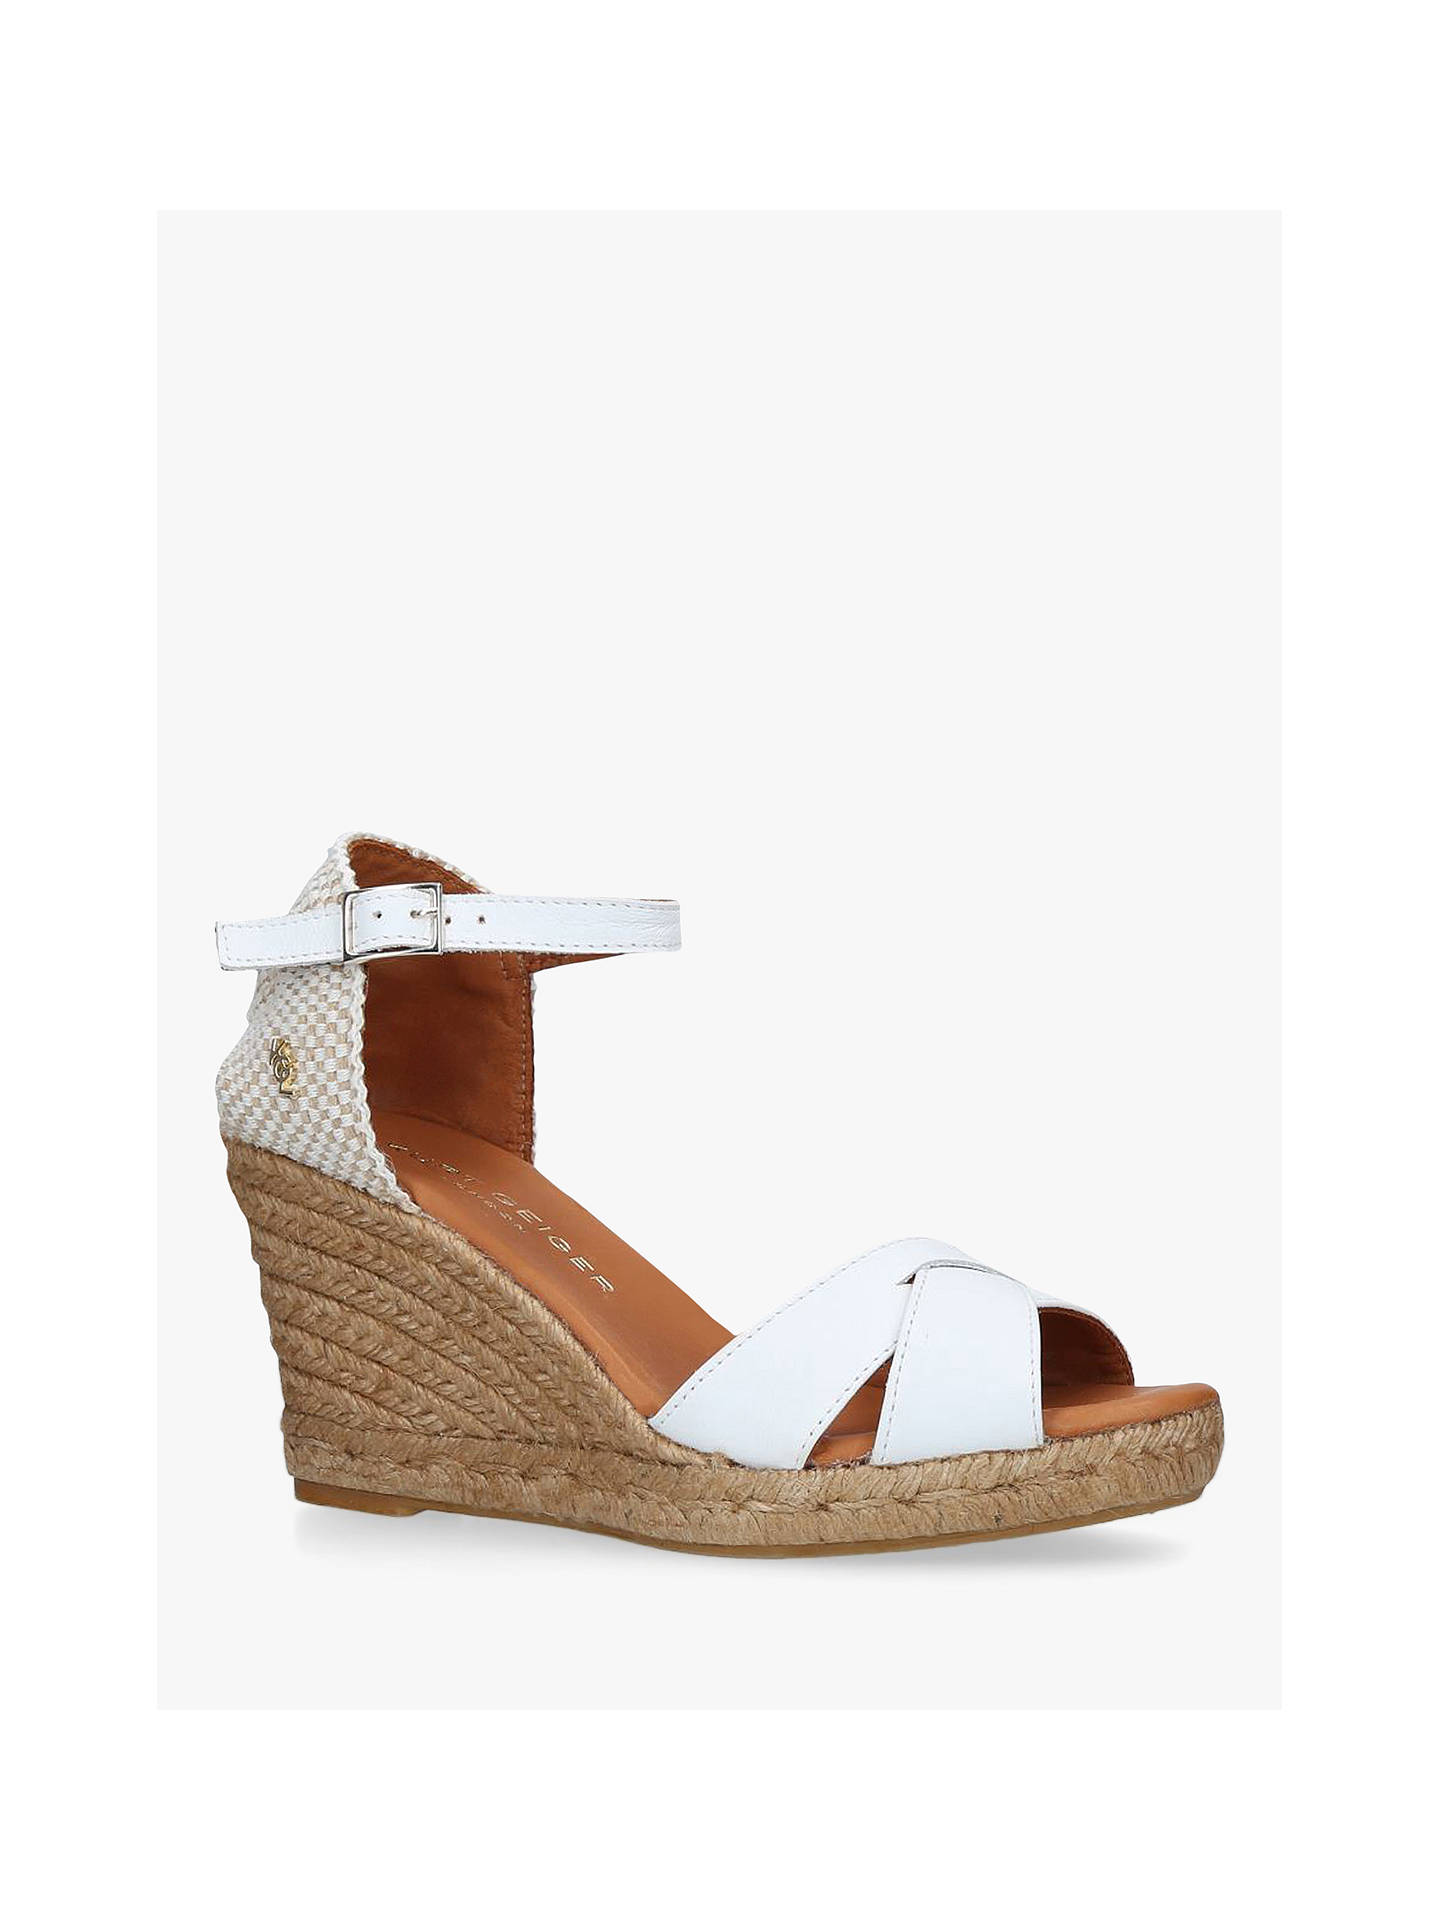 Buy Kurt Geiger London Leona Woven Wedge Sandals, White Leather, 3 Online at johnlewis.com